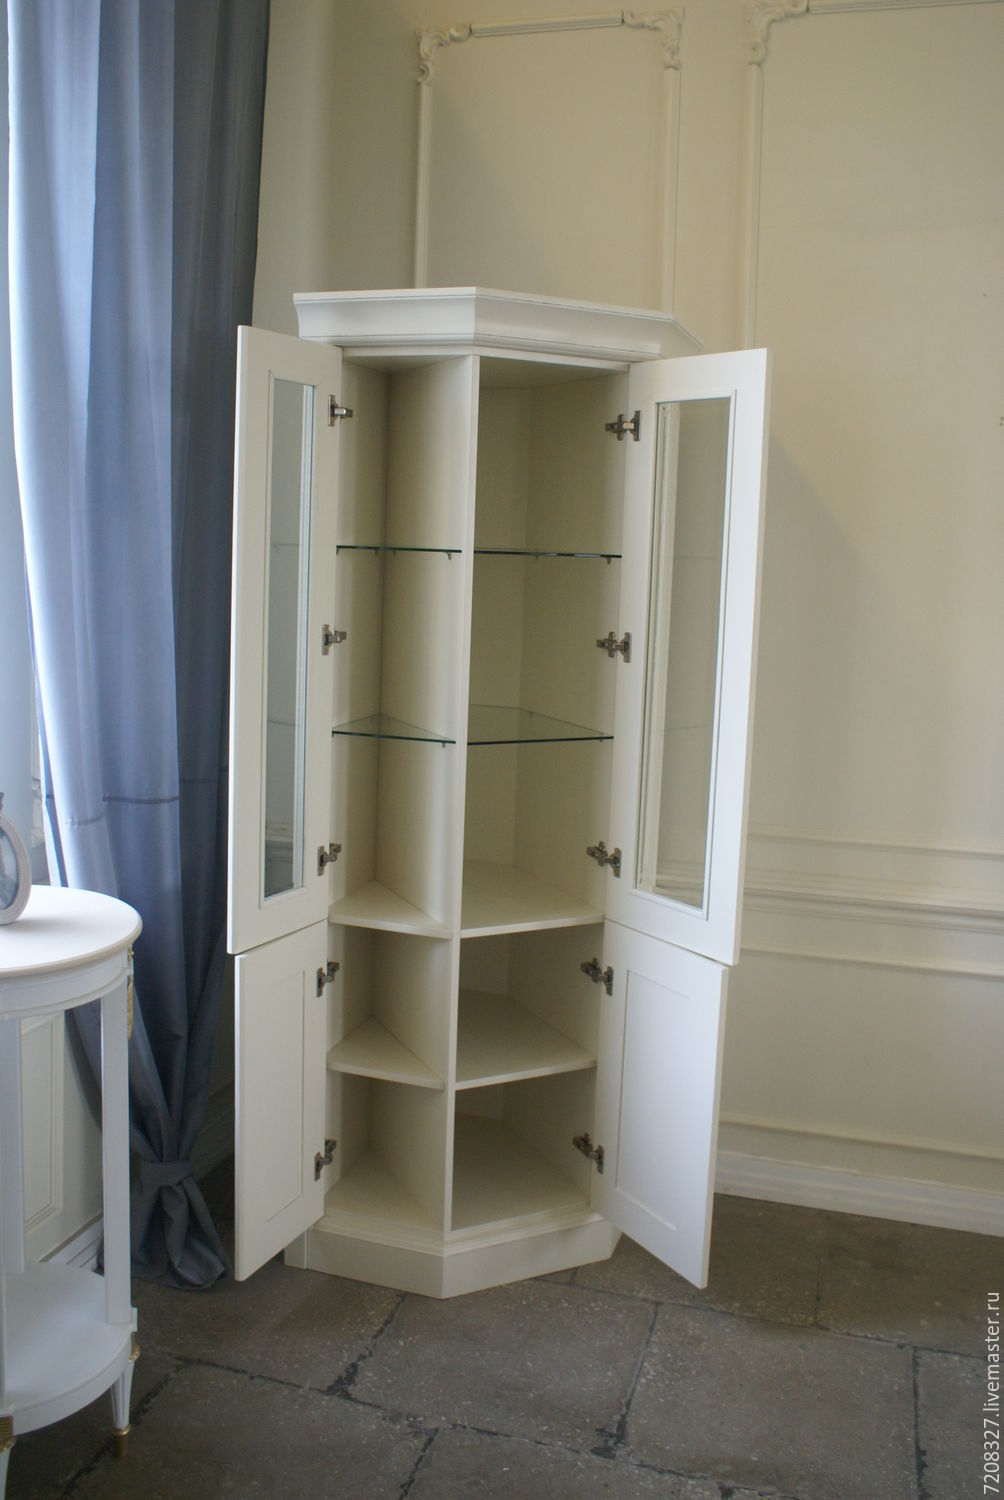 Wardrobe corner shop online on livemaster with shipping for Interior design 06877